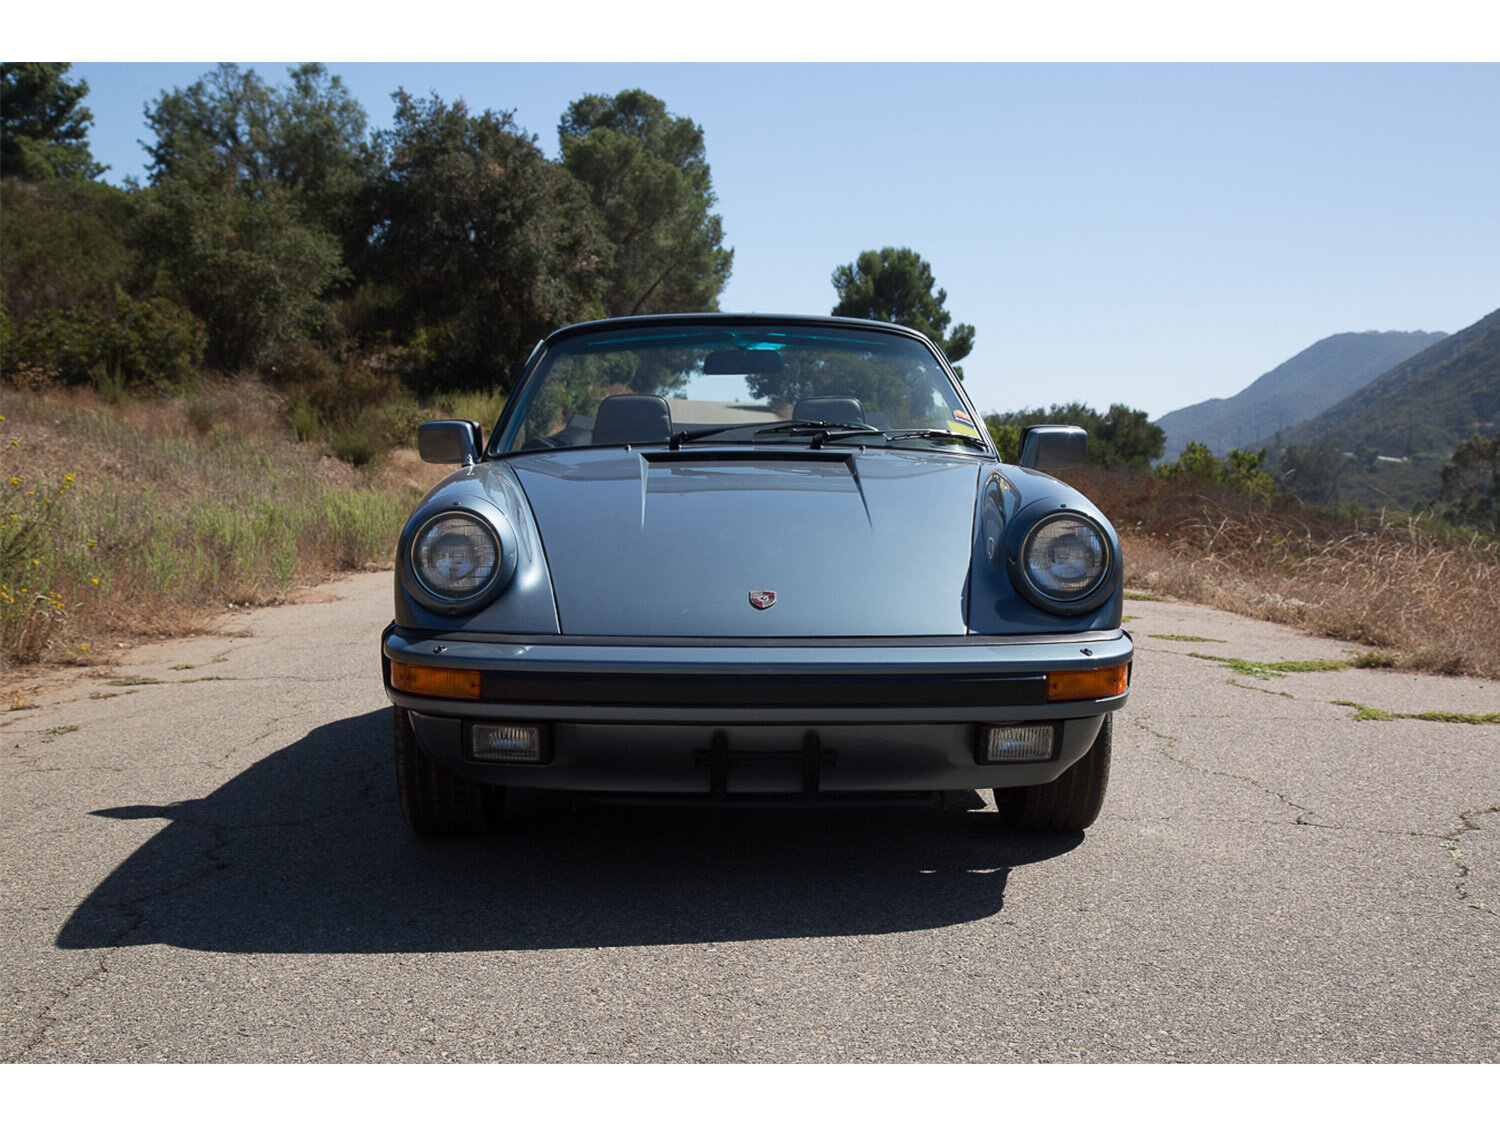 1984-carrera-cabriolet-slate-blue-911-sc-for-sale-makellos-classics_0001s_0000s_0040_1B7A6583.jpg